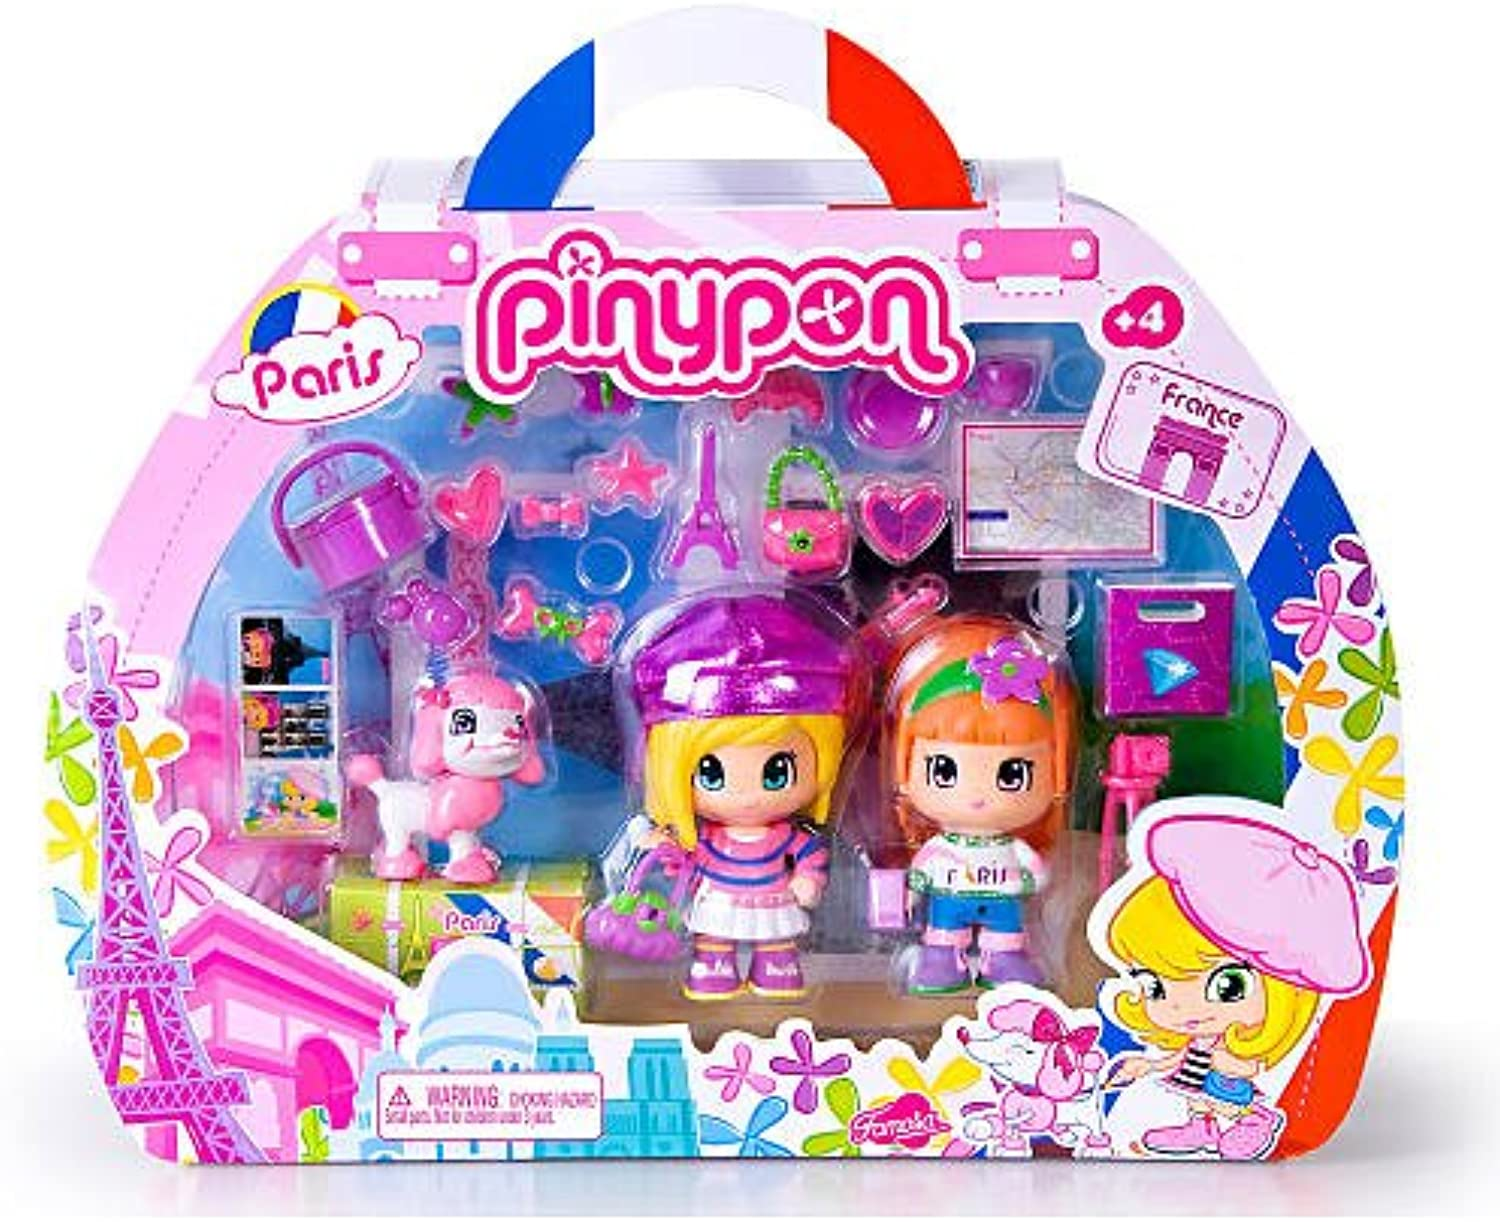 Pinypon Travelers Playset - Paris